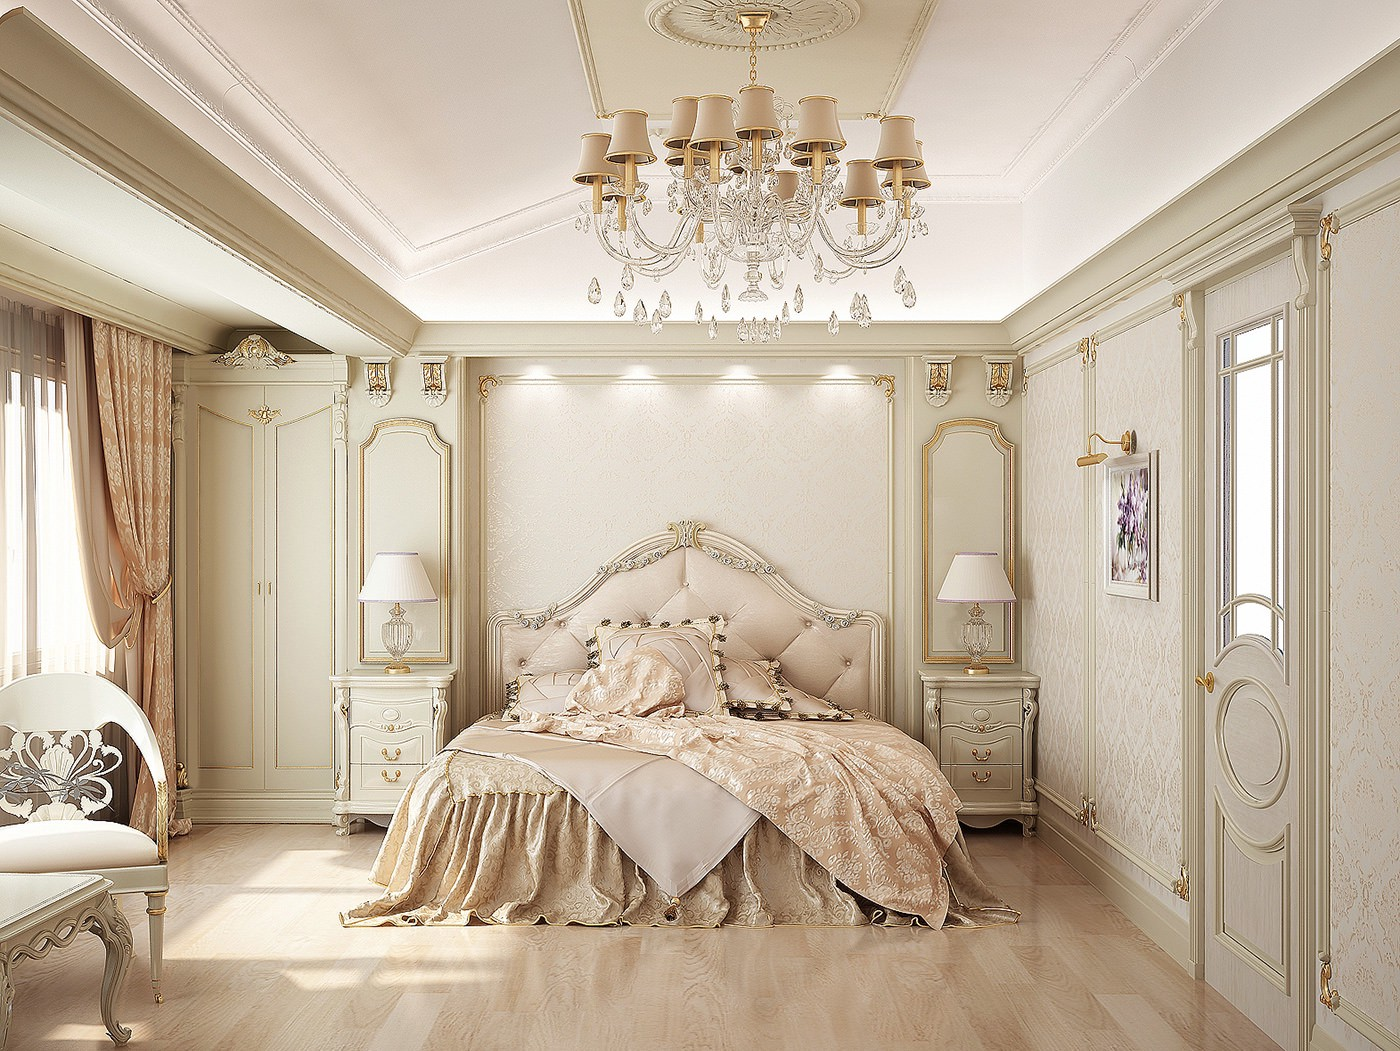 Merveilleux Classy U0026 Elegant Traditional Bedroom Design